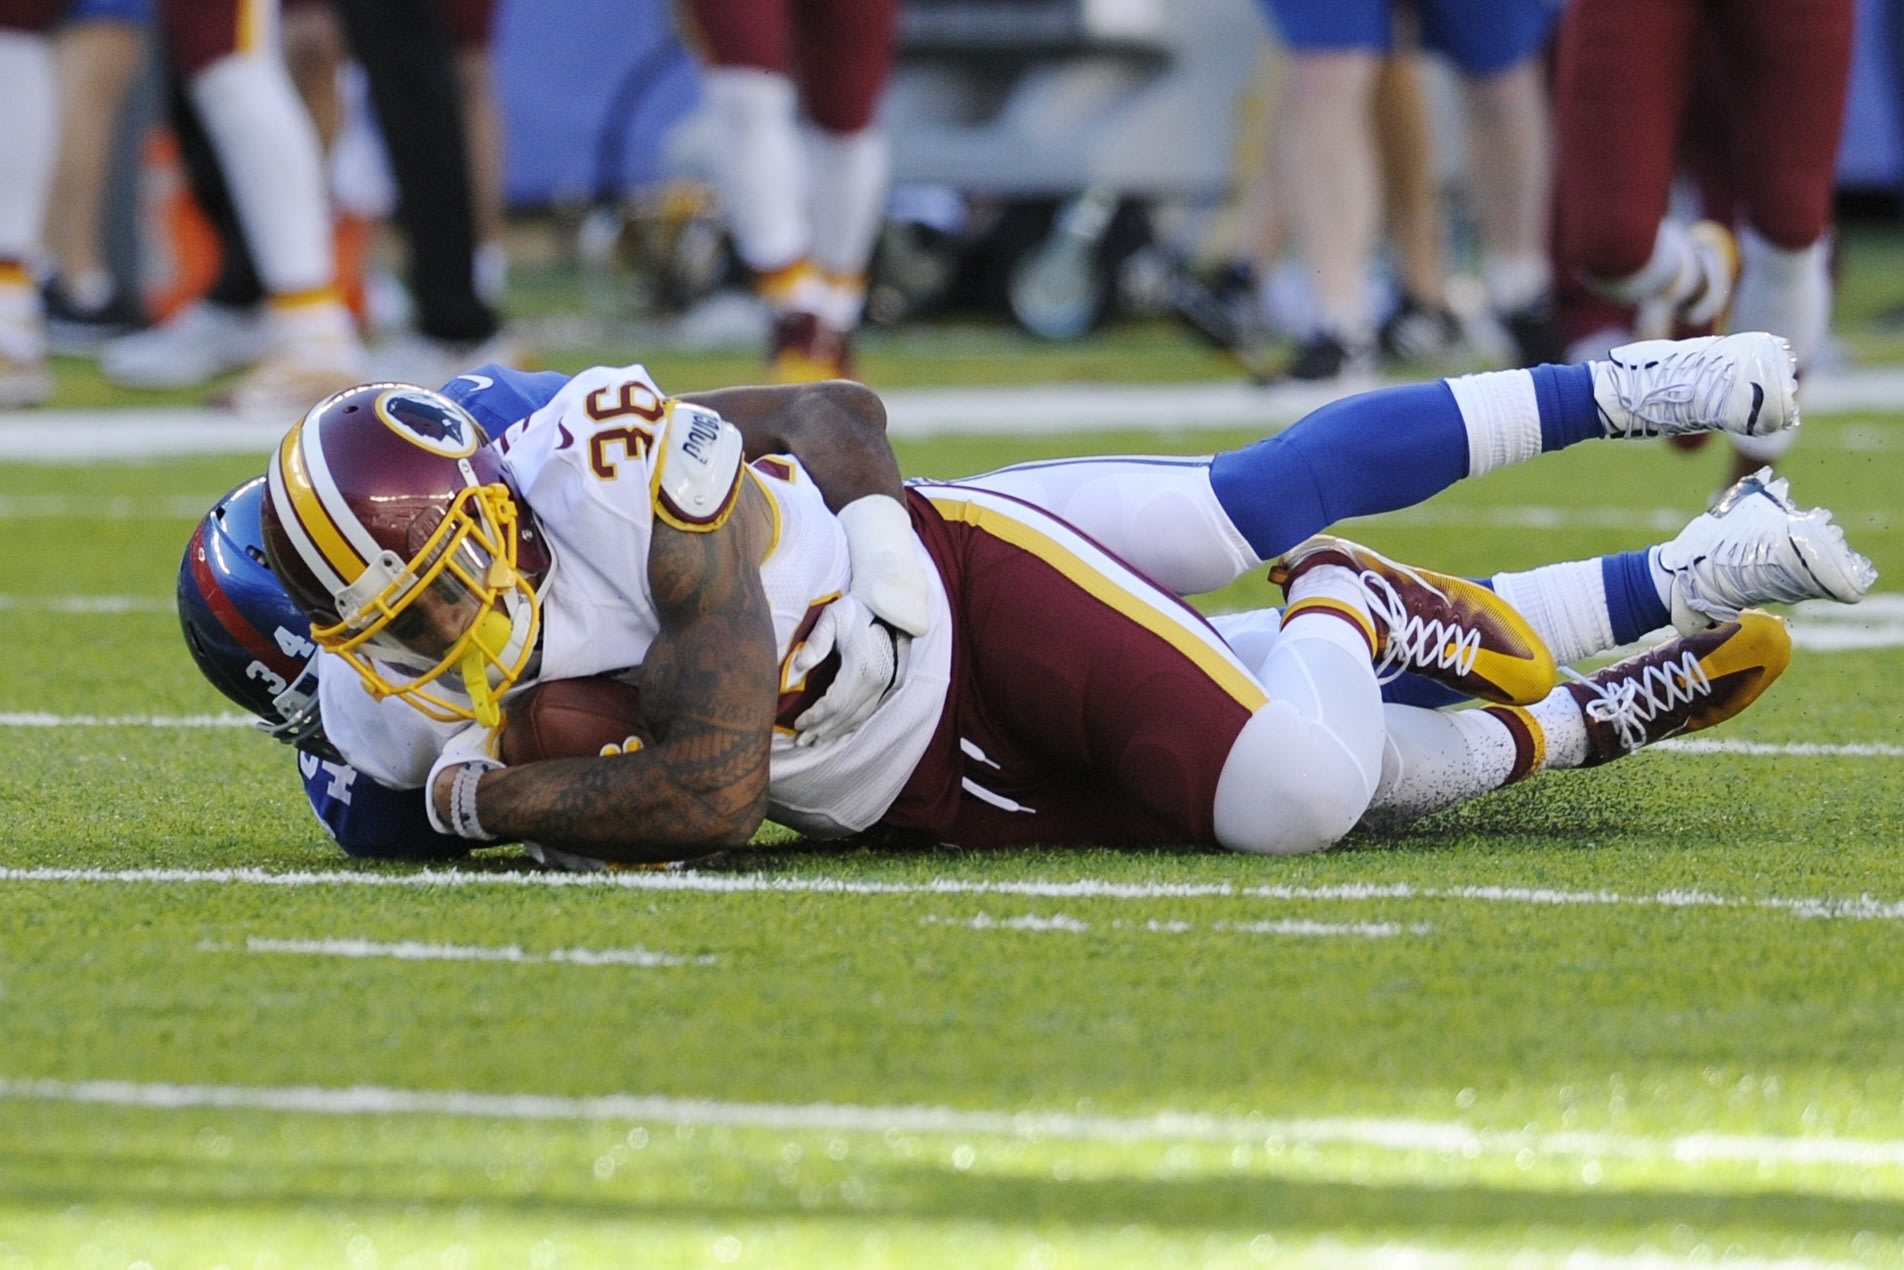 Coach: Redskins TE Jordan Reed evaluated for concussion